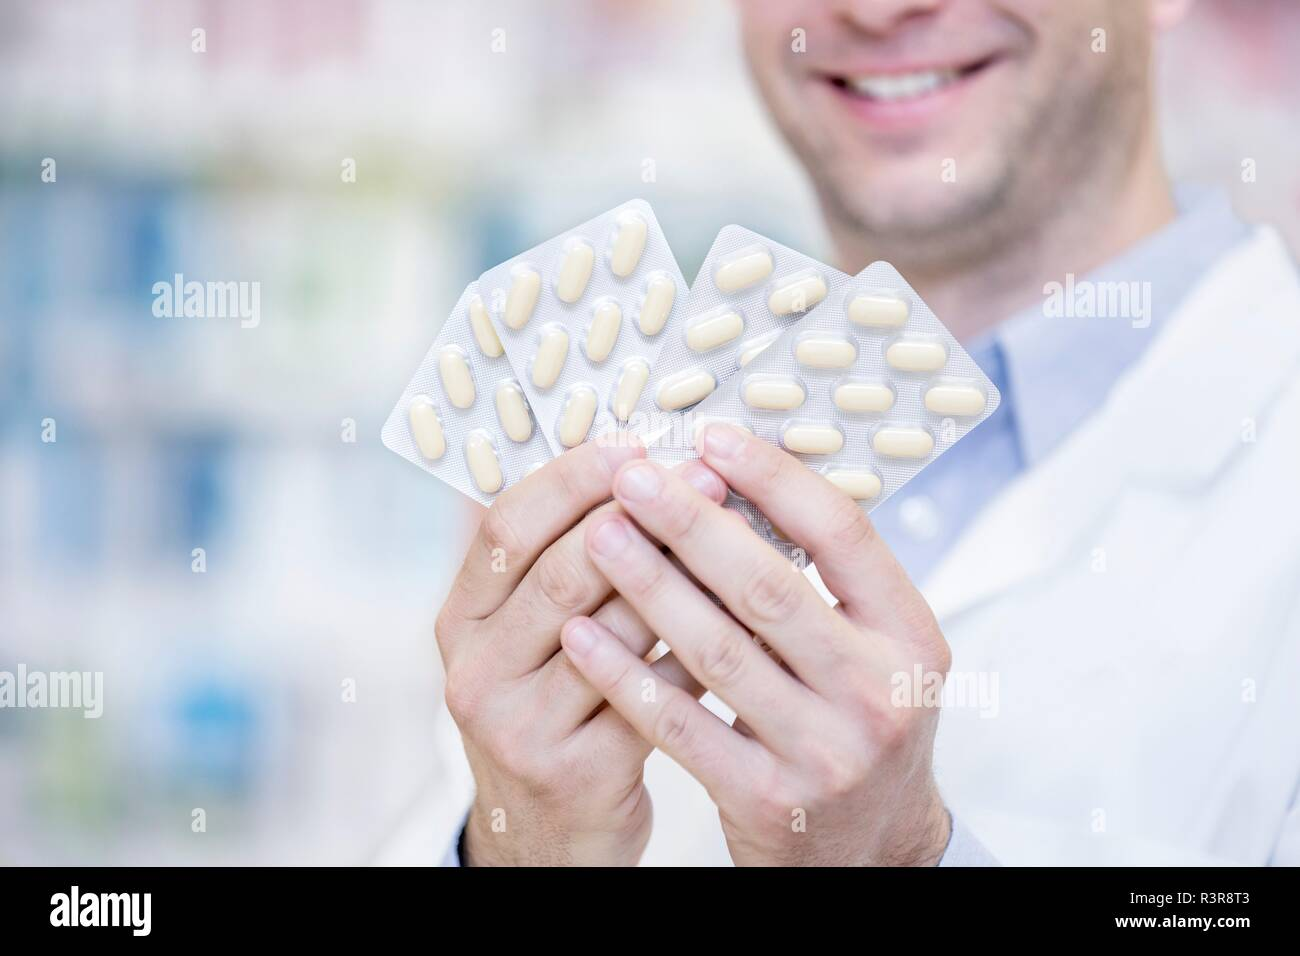 Pharmacist holding blister packs in pharmacy. - Stock Image